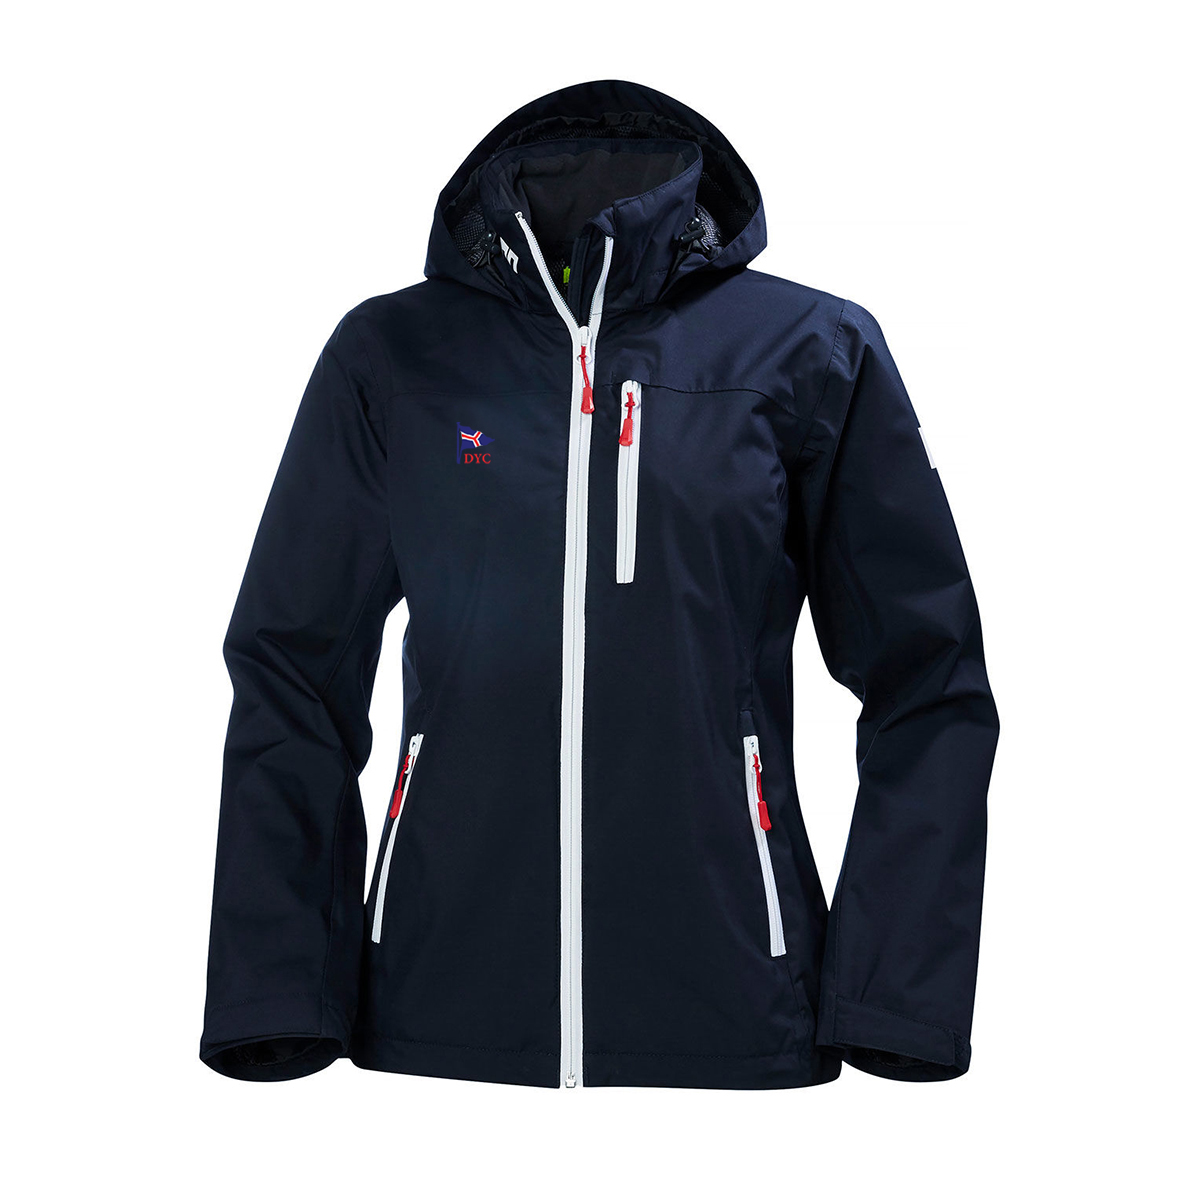 DEVON YACHT CLUB HELLY HANSEN W's HOODED CREW JKT